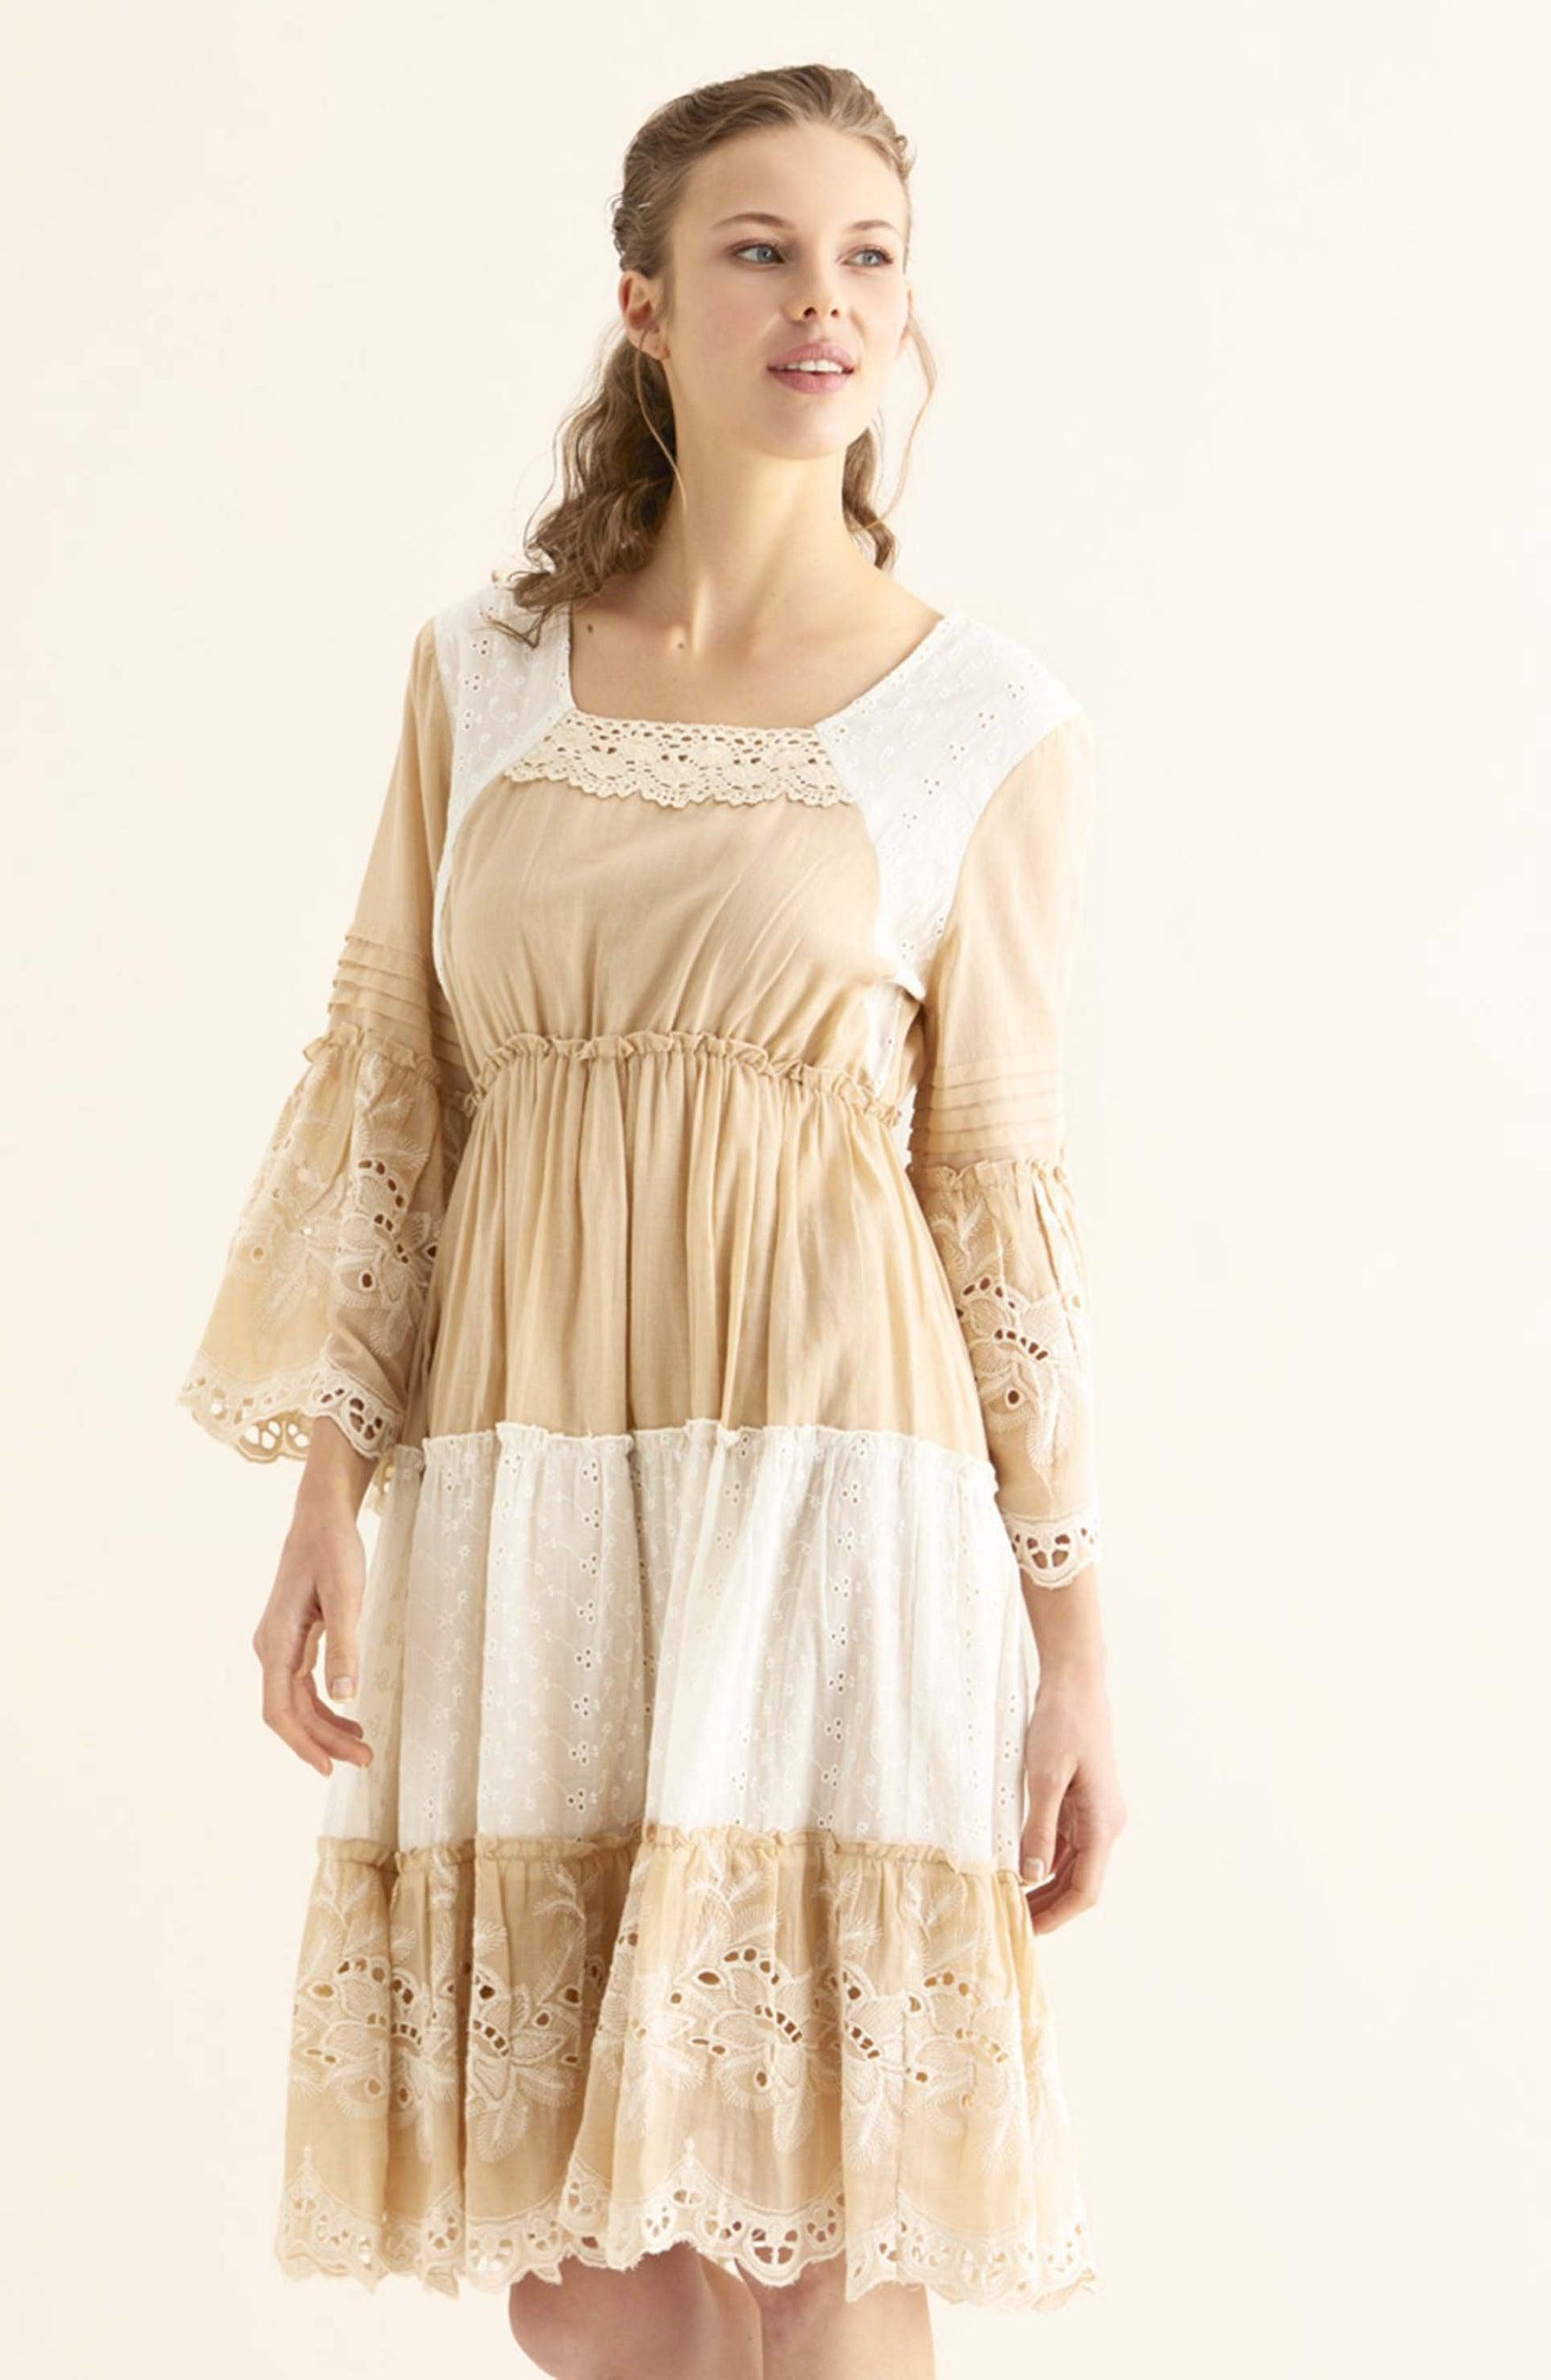 ROMAN USA-Tiered Eyelet Sundress-